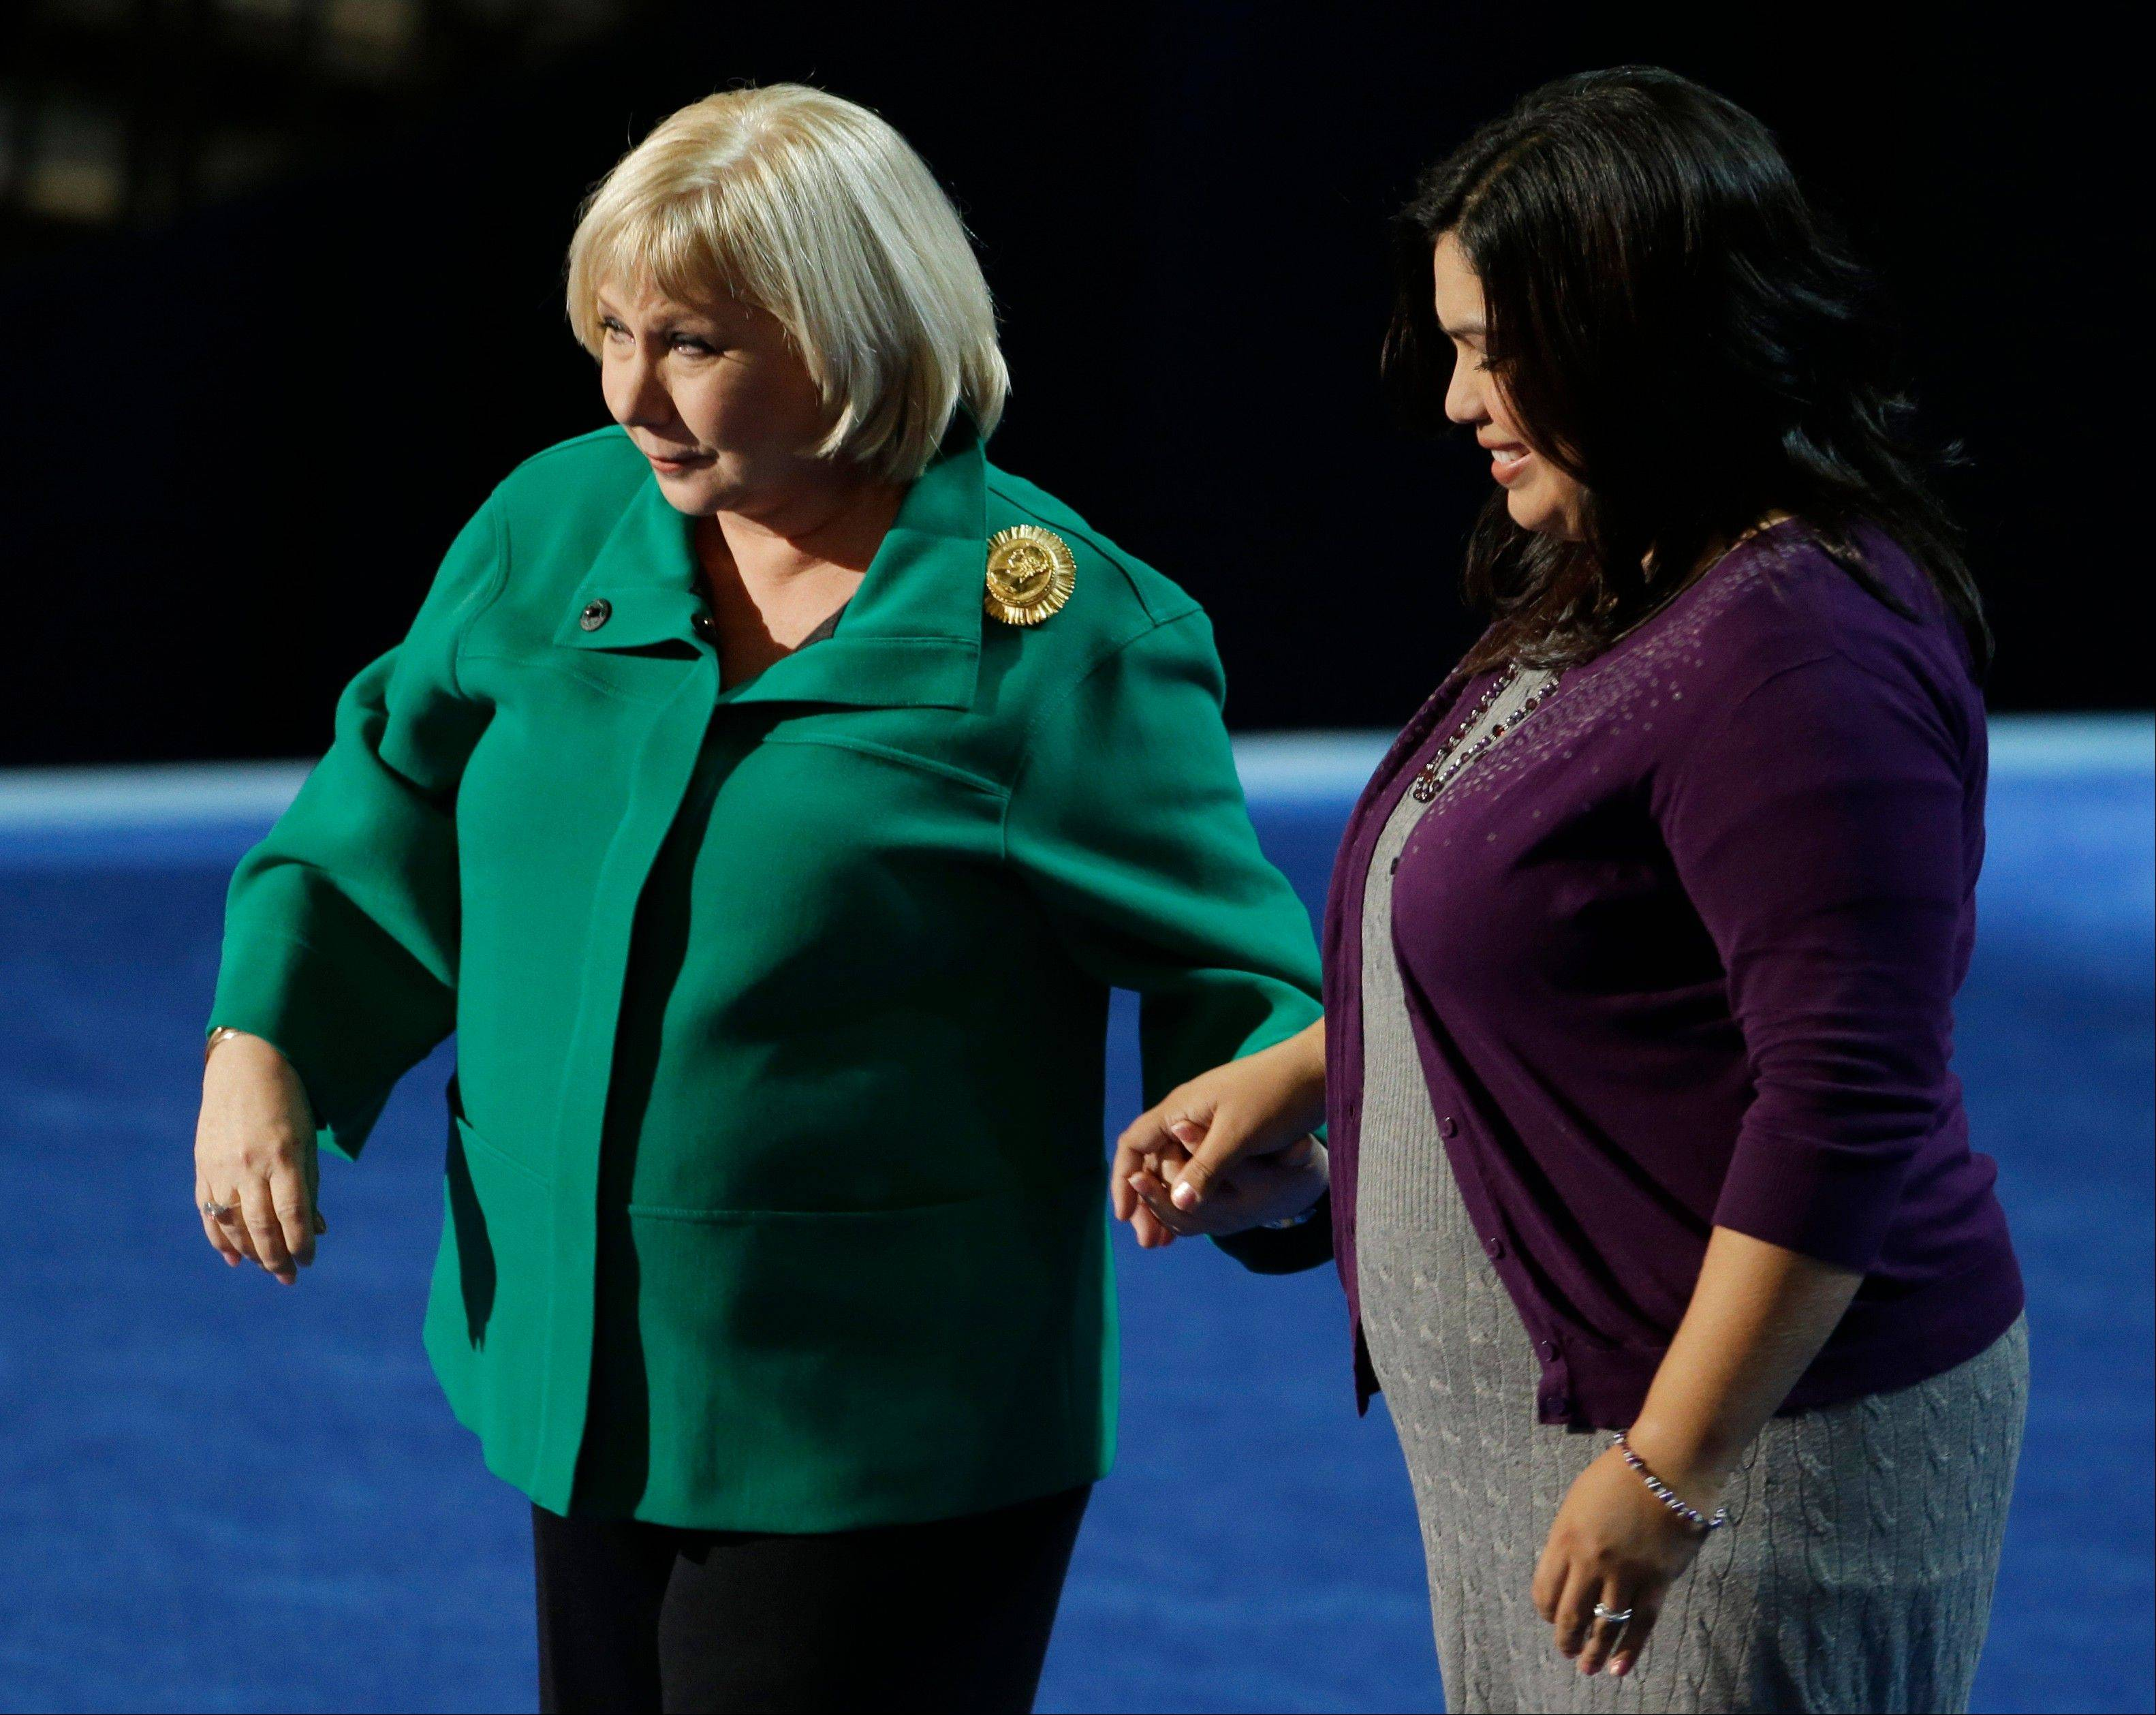 Journalist and talk show host Cristina Saralegui, left, hold hands with DREAM Act activist Benita Veliz at the Democratic National Convention in Charlotte, N.C., on Wednesday, Sept. 5, 2012.